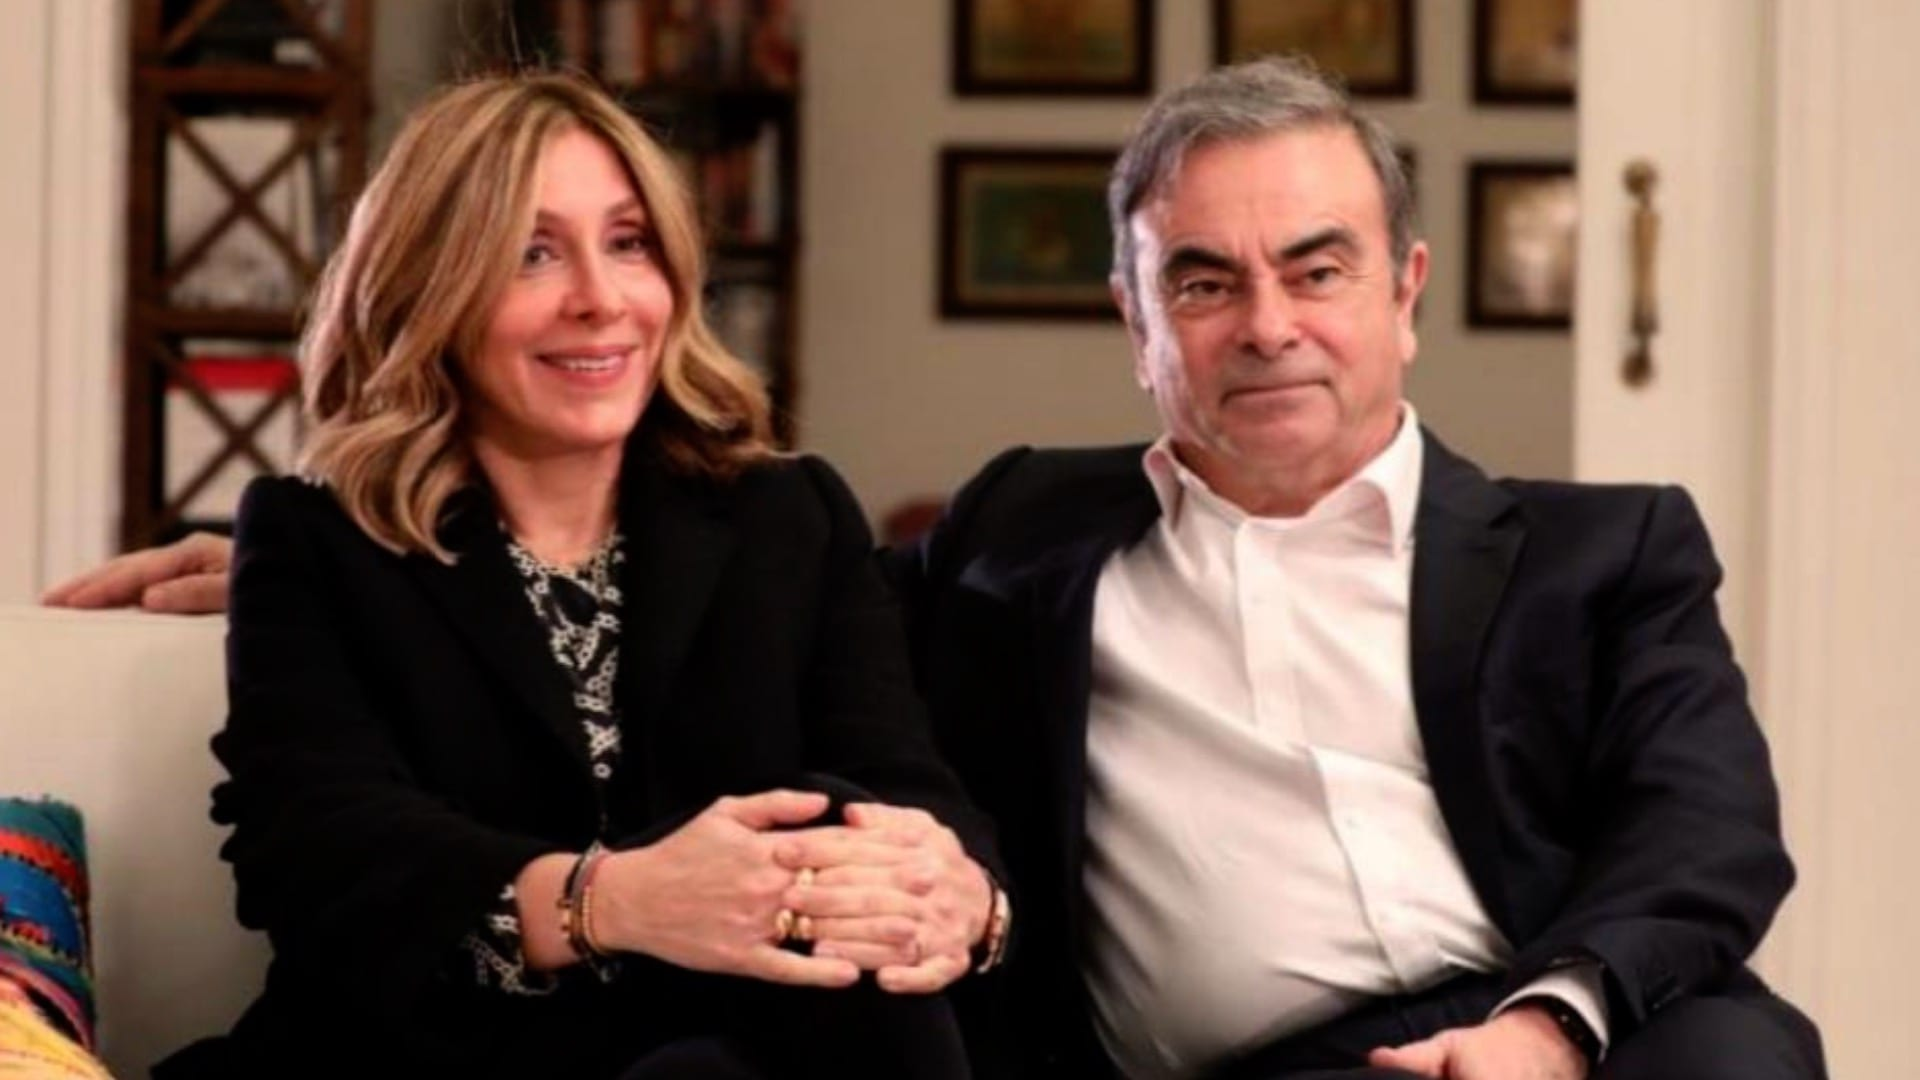 Carlos Ghosn and his wife in Beirut